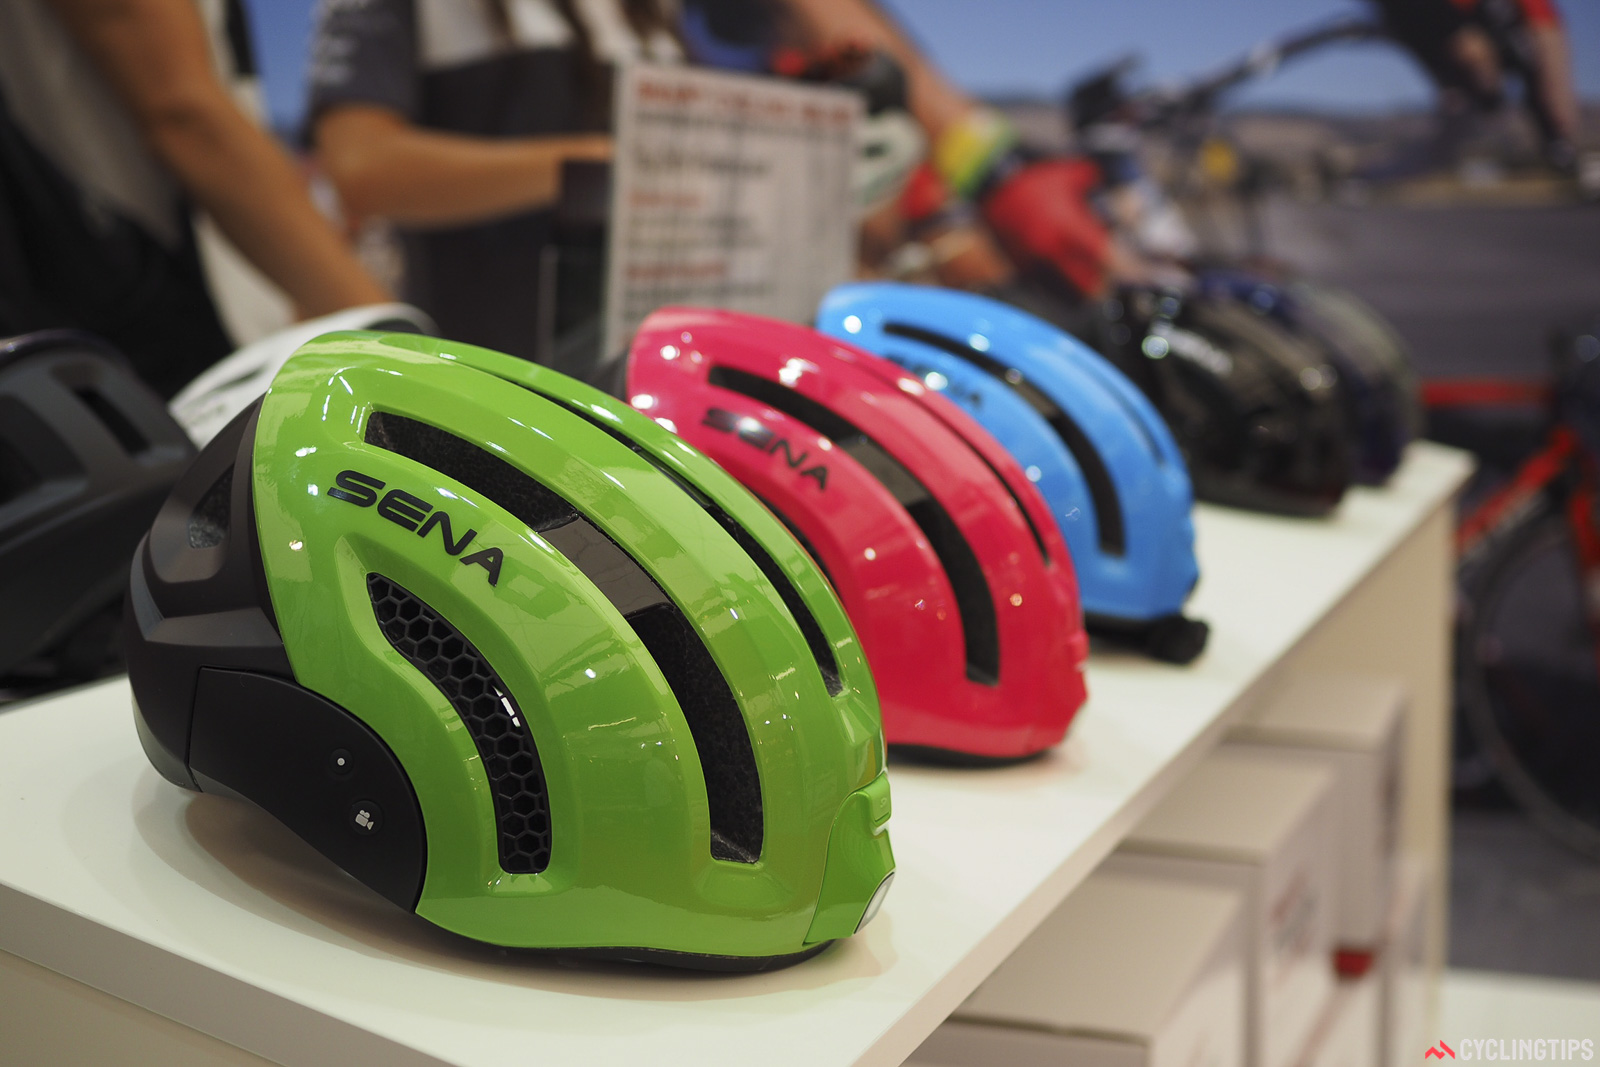 Helmets have recently become the latest battleground for technology. Sena previewed a new helmet that includes a forward facing video camera, a Bluetooth two-way intercom system, and built-in stereo speakers. Photo: James Huang.